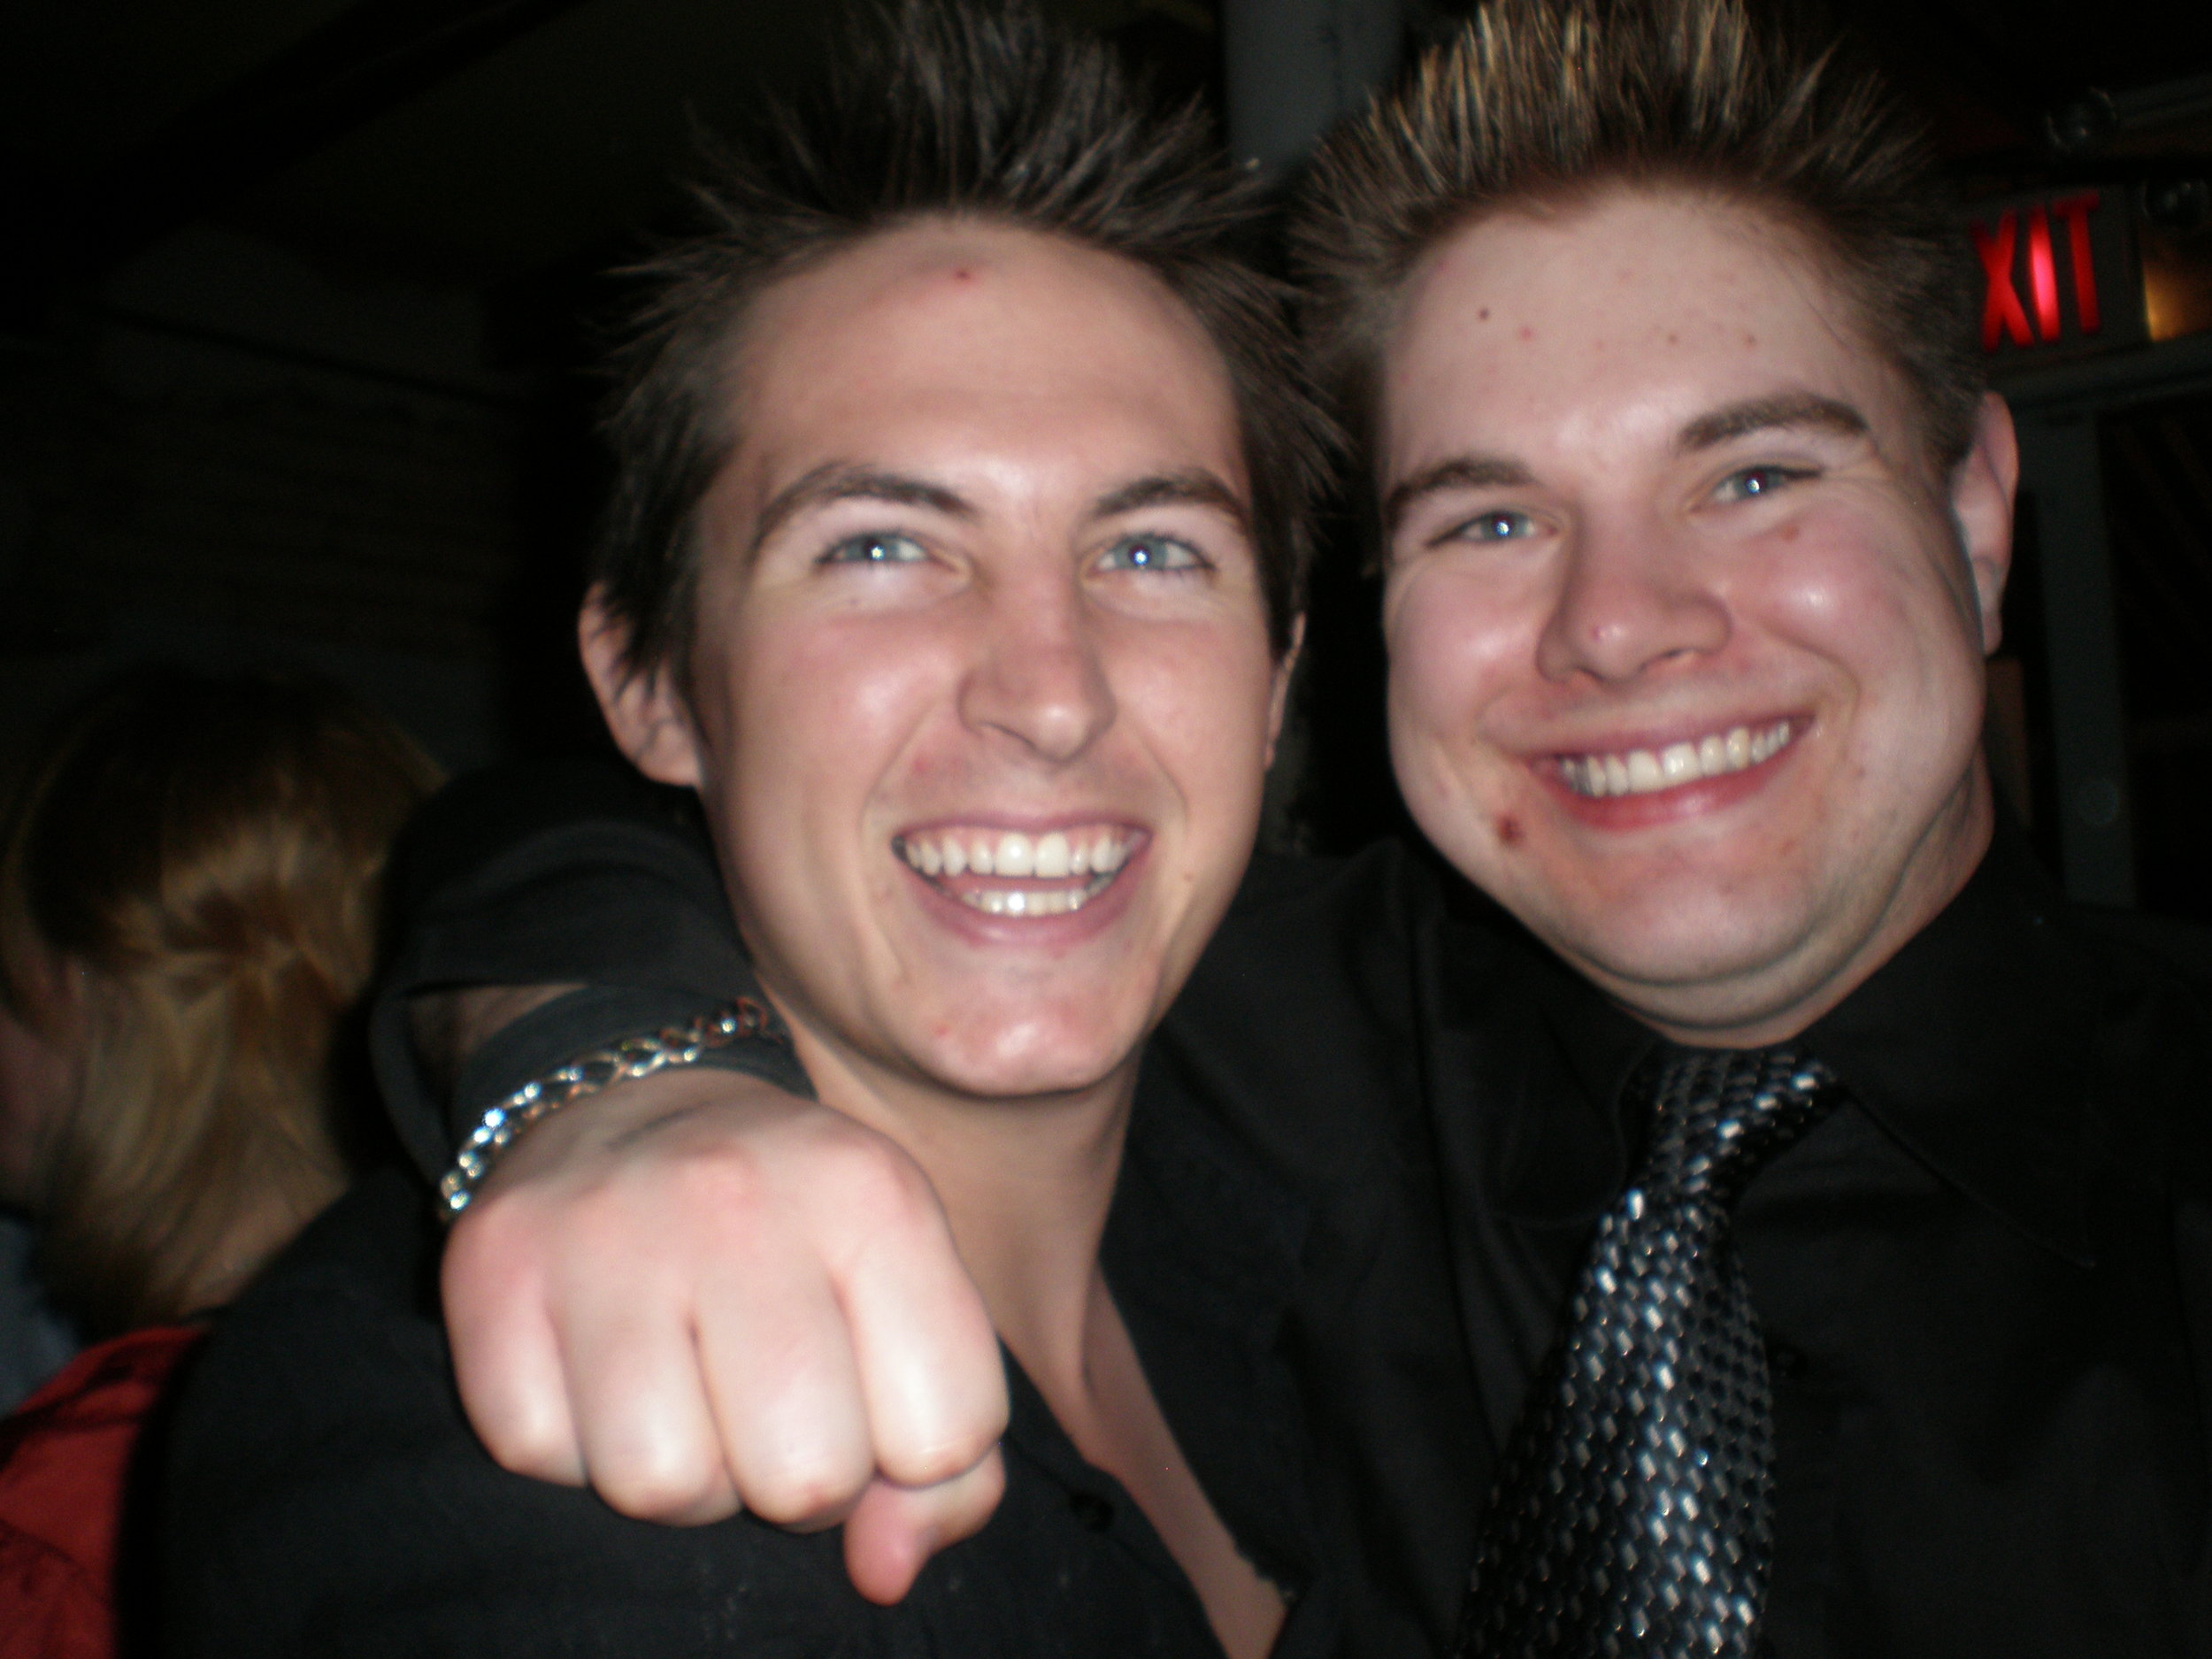 Alex with Real Social Dynamics Salesman Stuart M Lewis, 2009